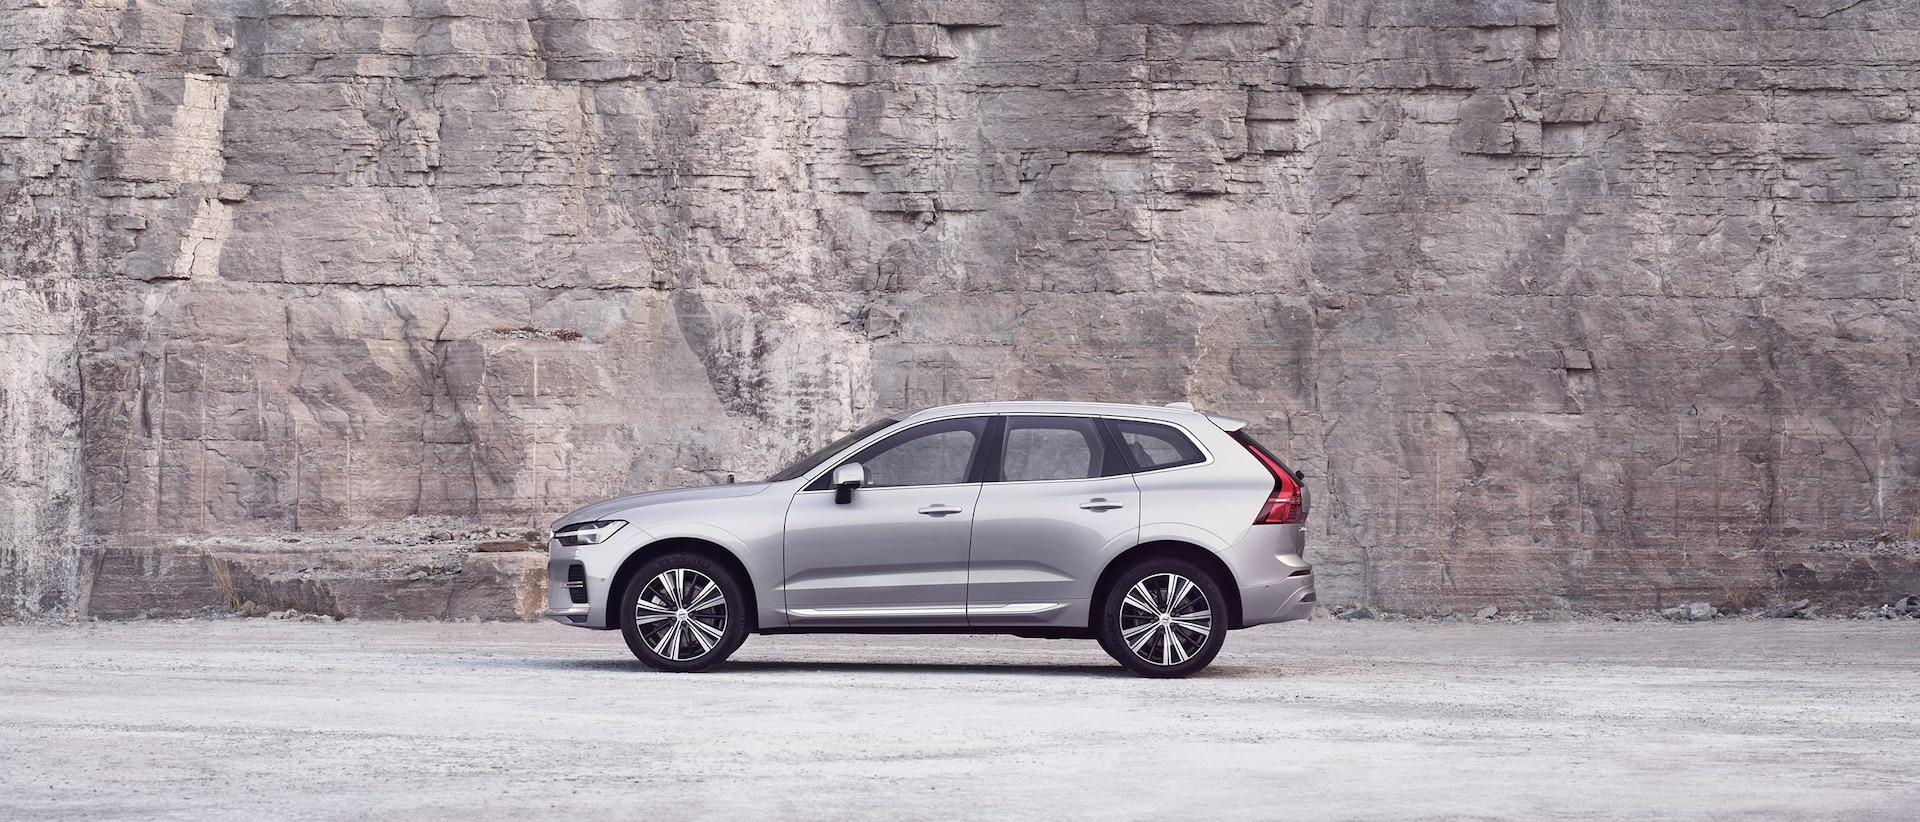 A silver Volvo XC60 standing still in front of a rock wall.